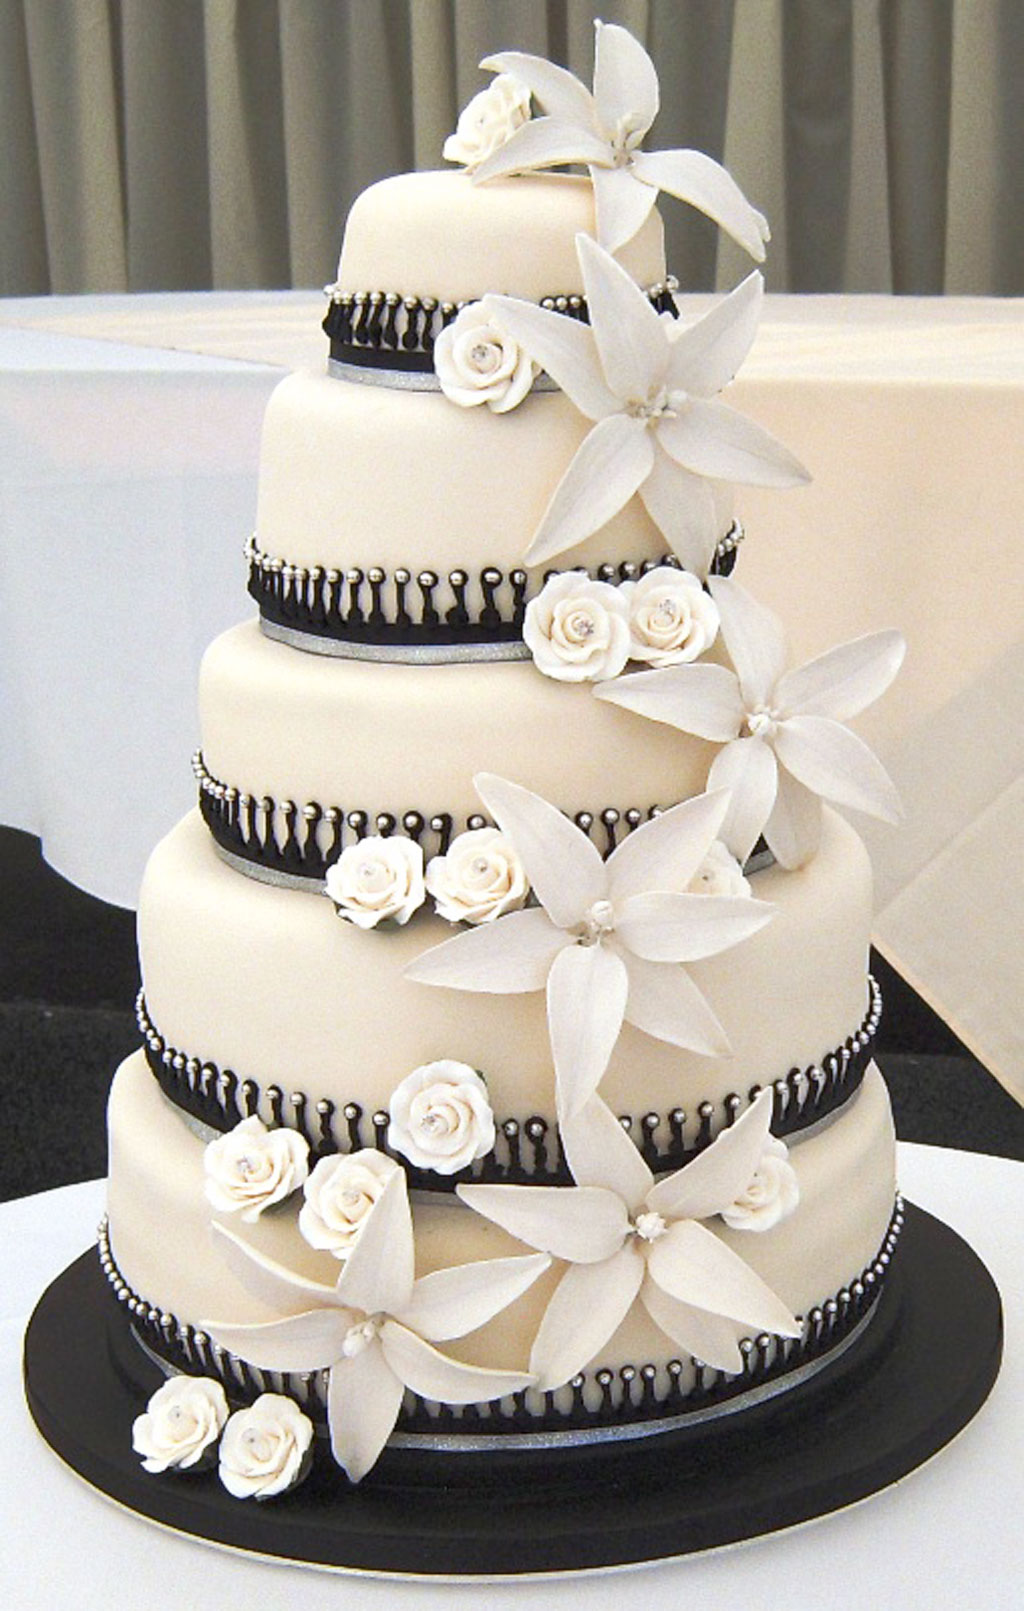 wedding cake designs 2014 black white wedding cake designs wedding cake cake ideas 22464